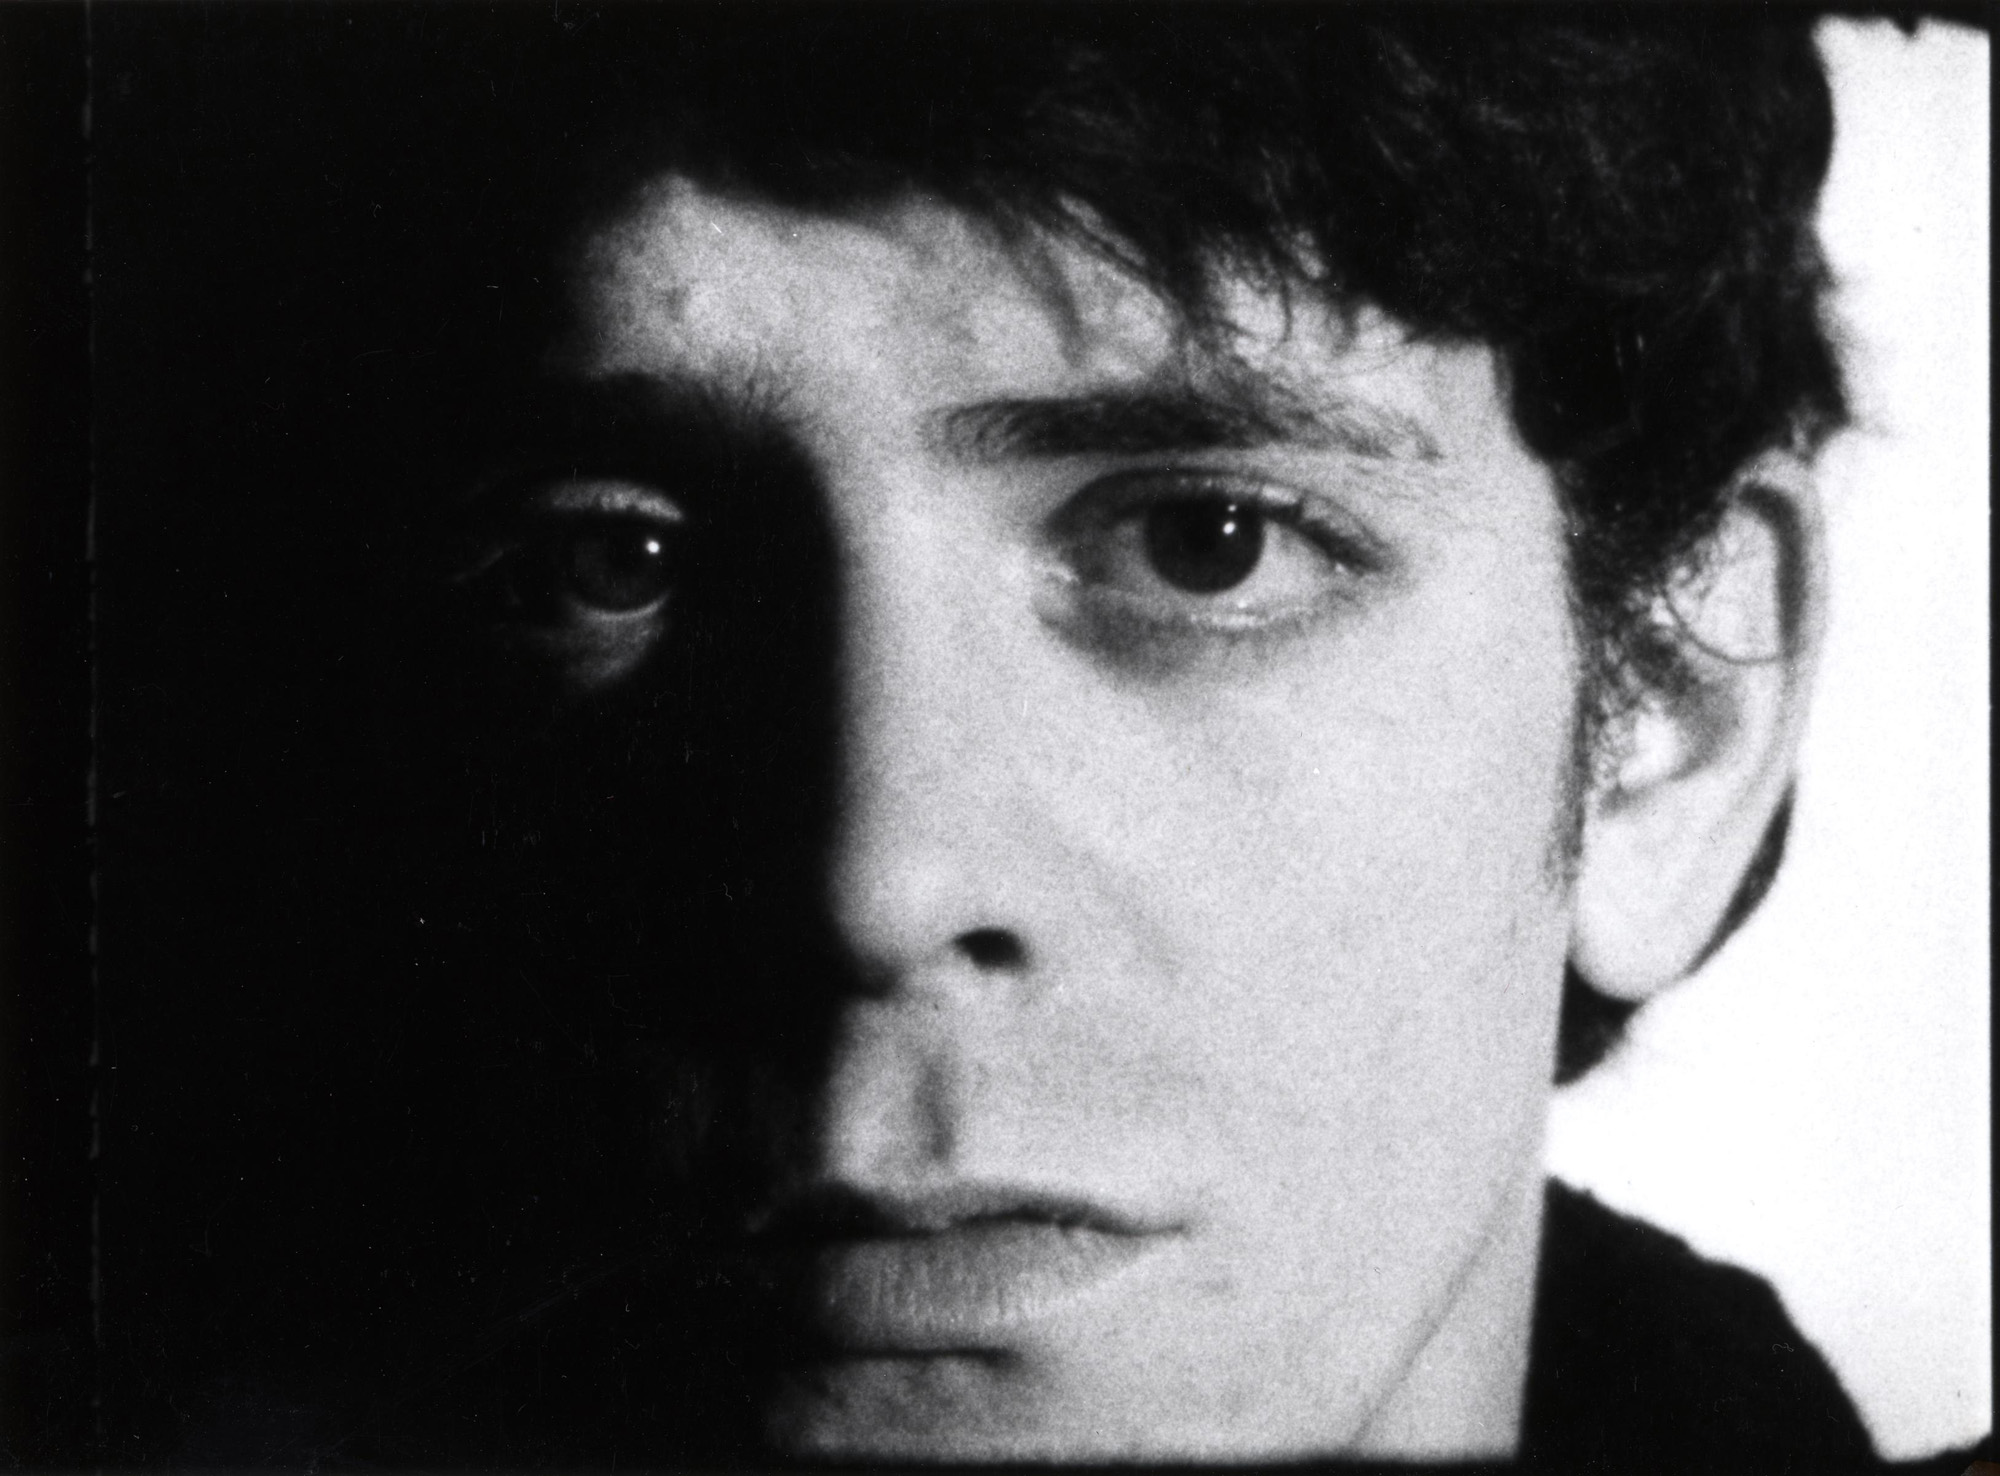 Lou Reed, a life on the wild side